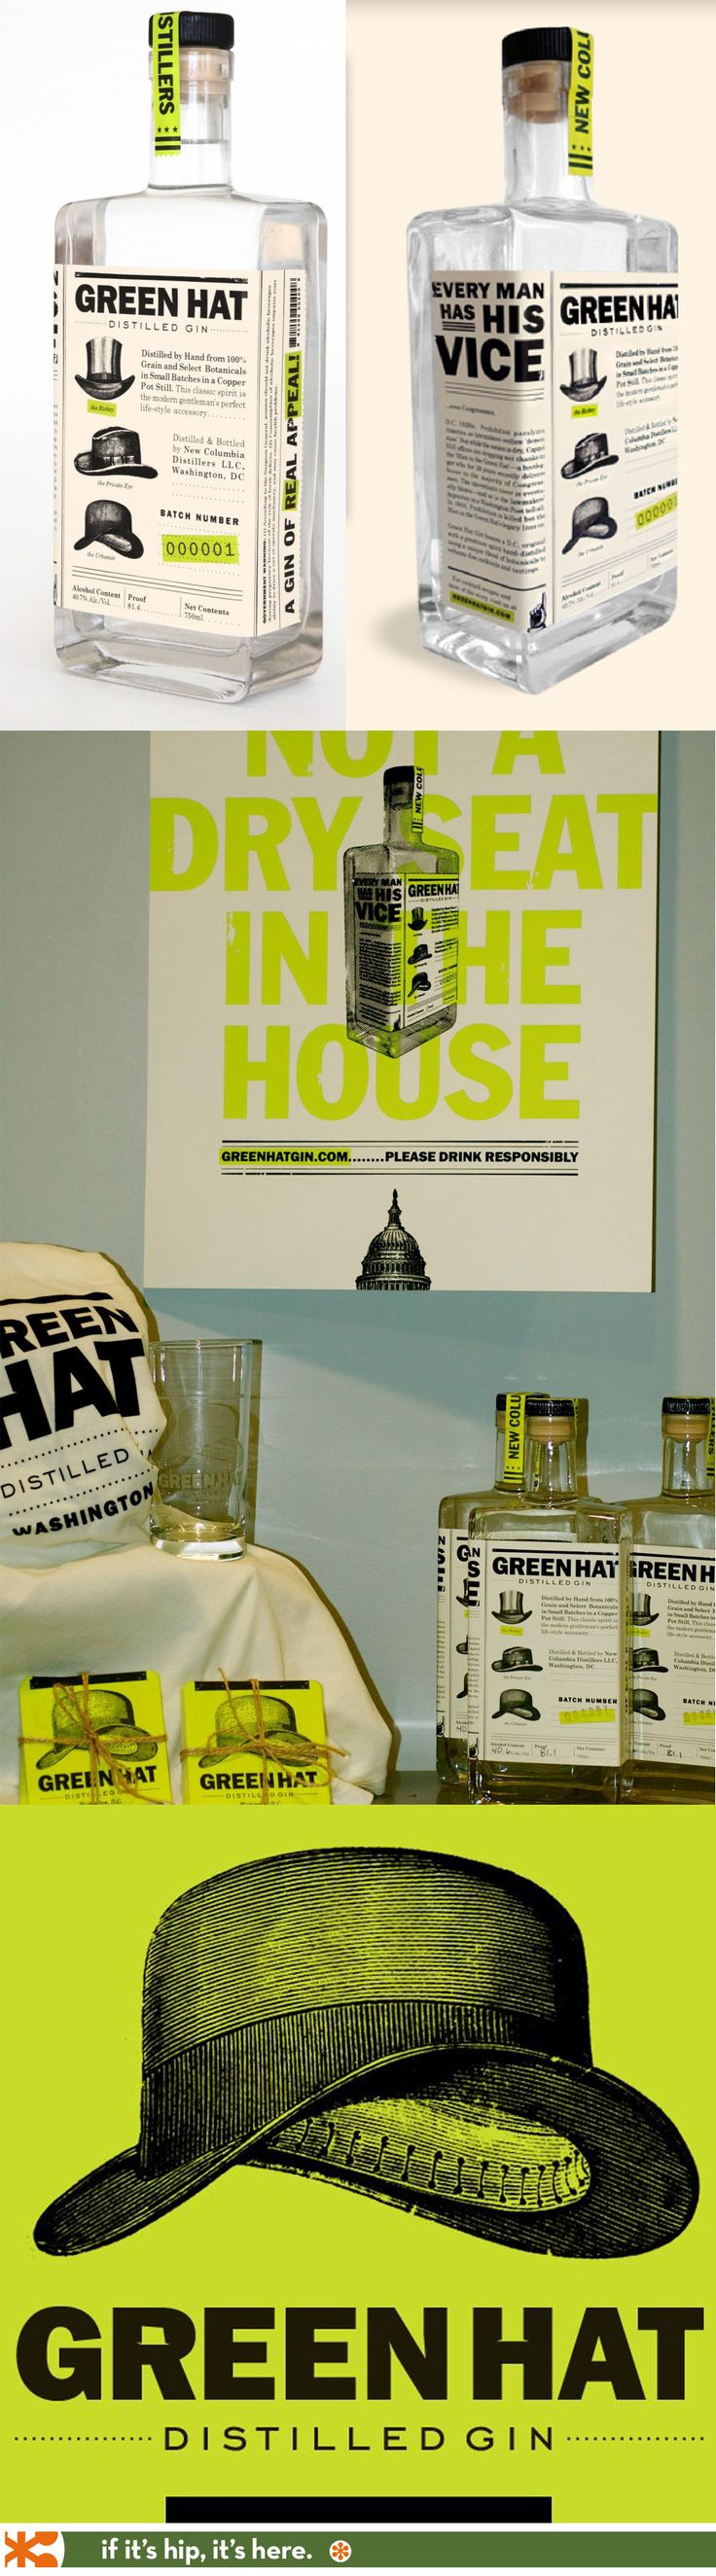 Green Hat Gin's beautiful bottle design and branding PD